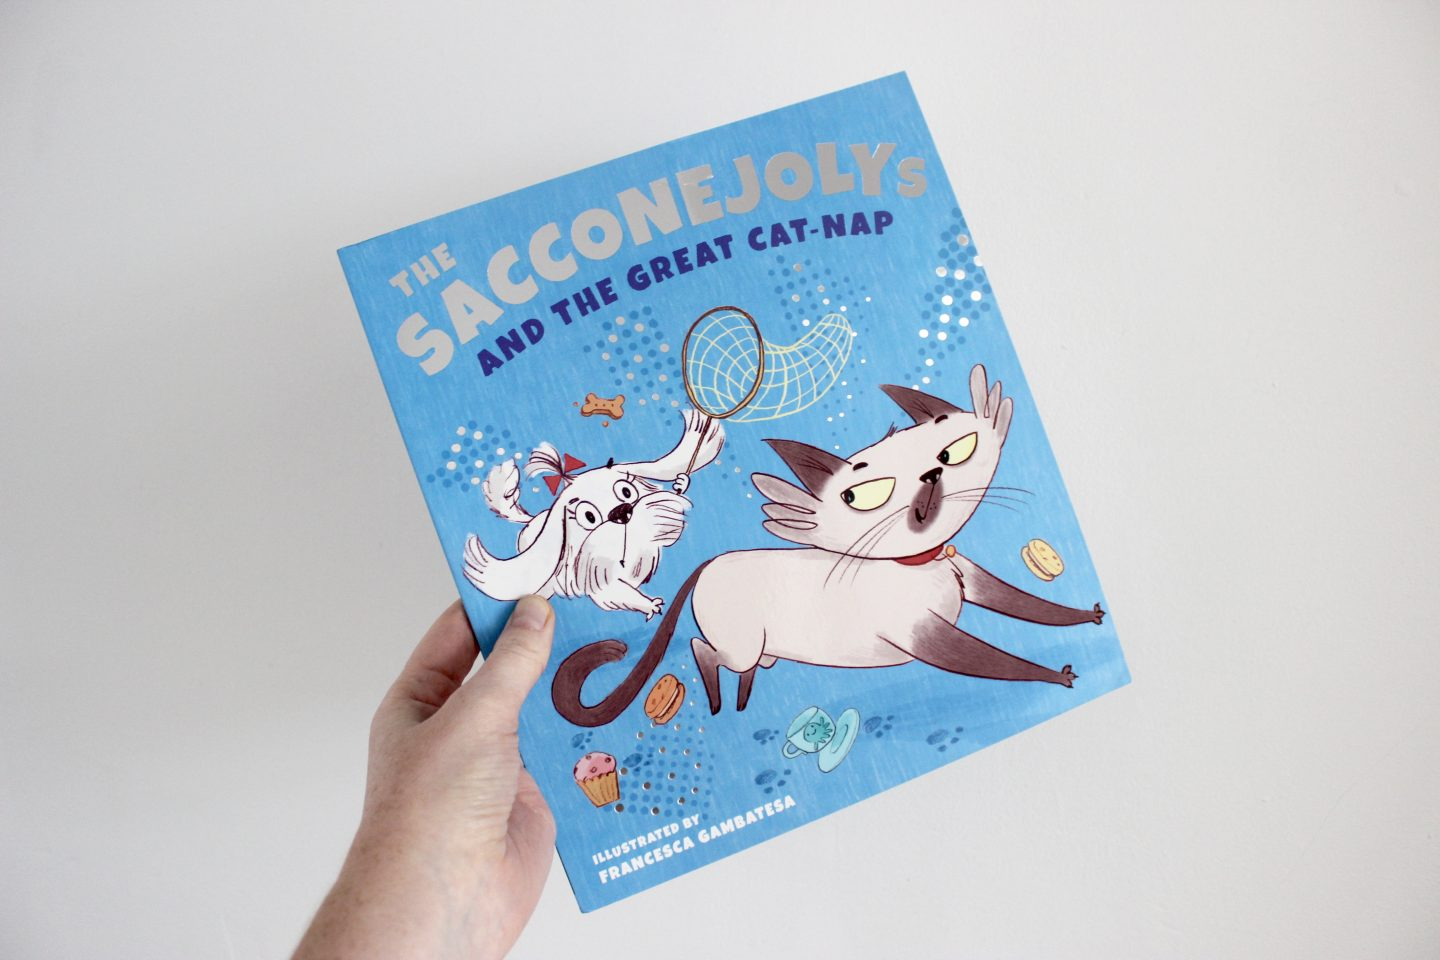 THE SACCONE JOLYS AND THE GREAT CAT-NAP REVIEW